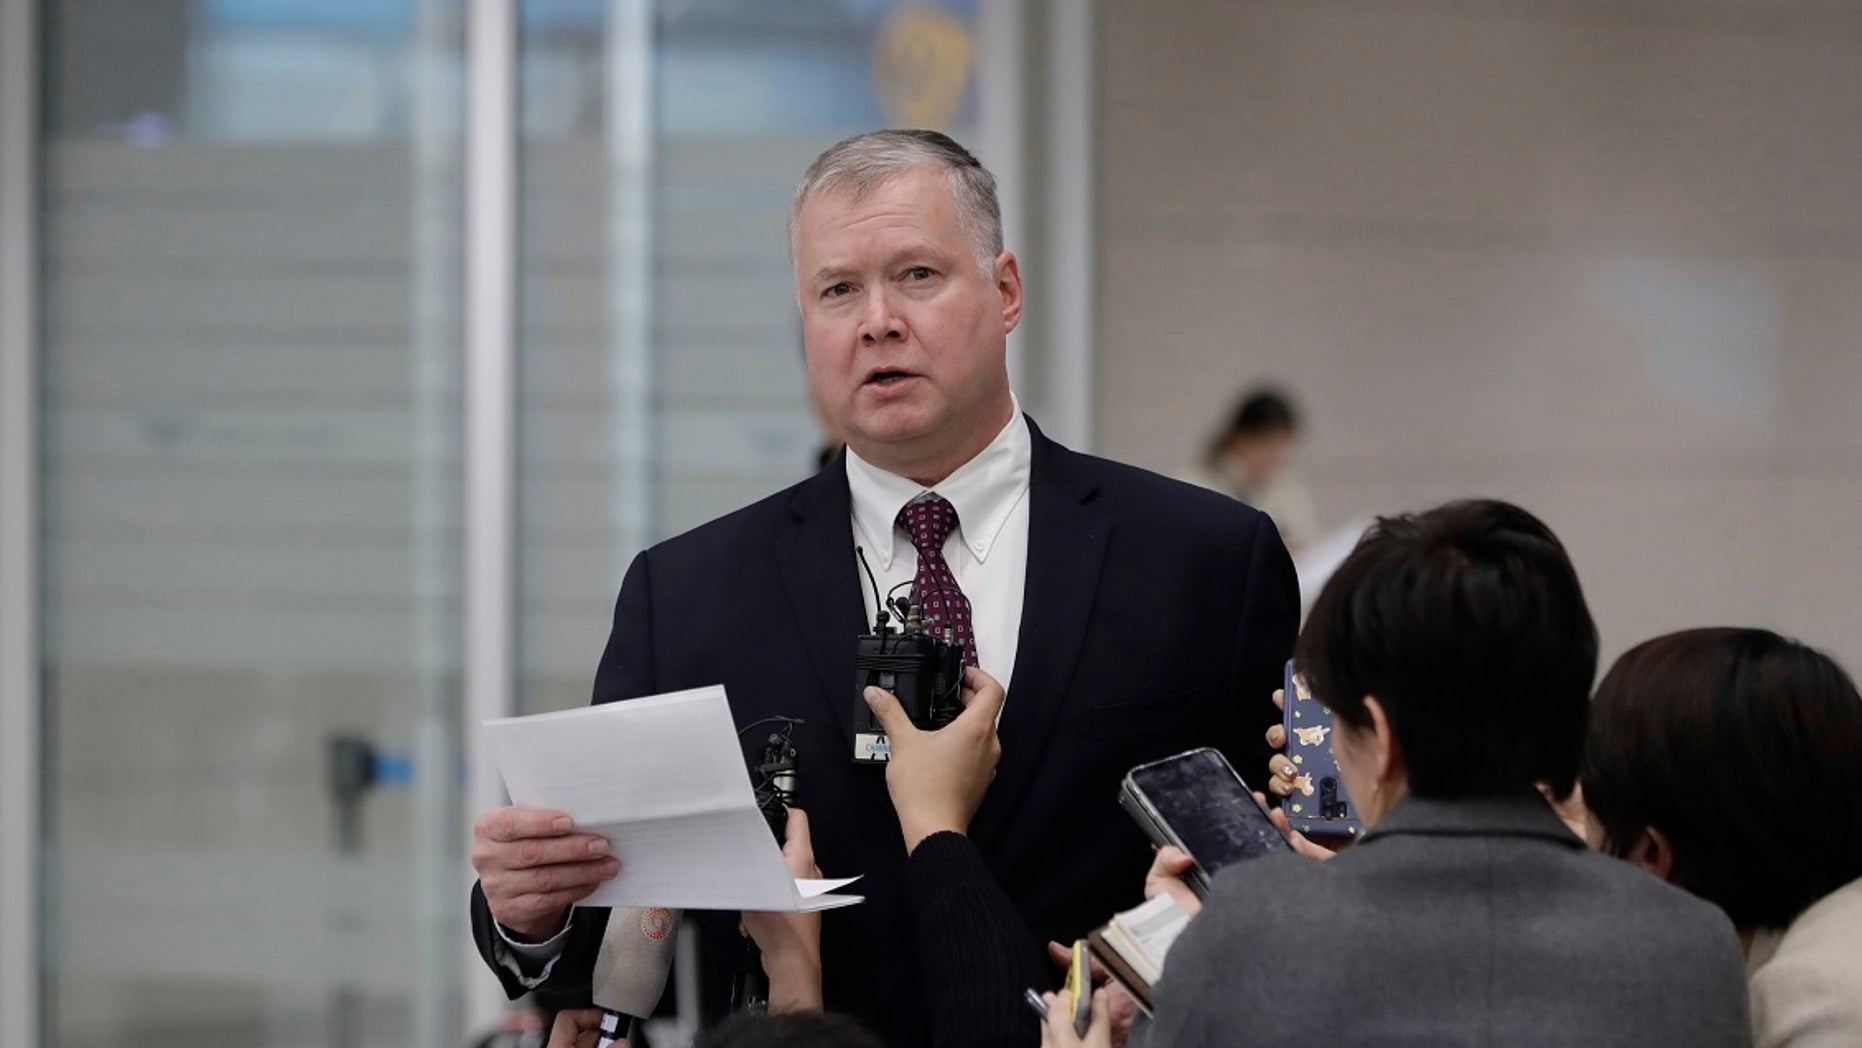 U.S. Special Representative for North Korea Stephen Biegun speaks to the media upon his arrival at Incheon International Airport in Incheon, South Korea, Wednesday, Dec. 19, 2018. (Associated Press)